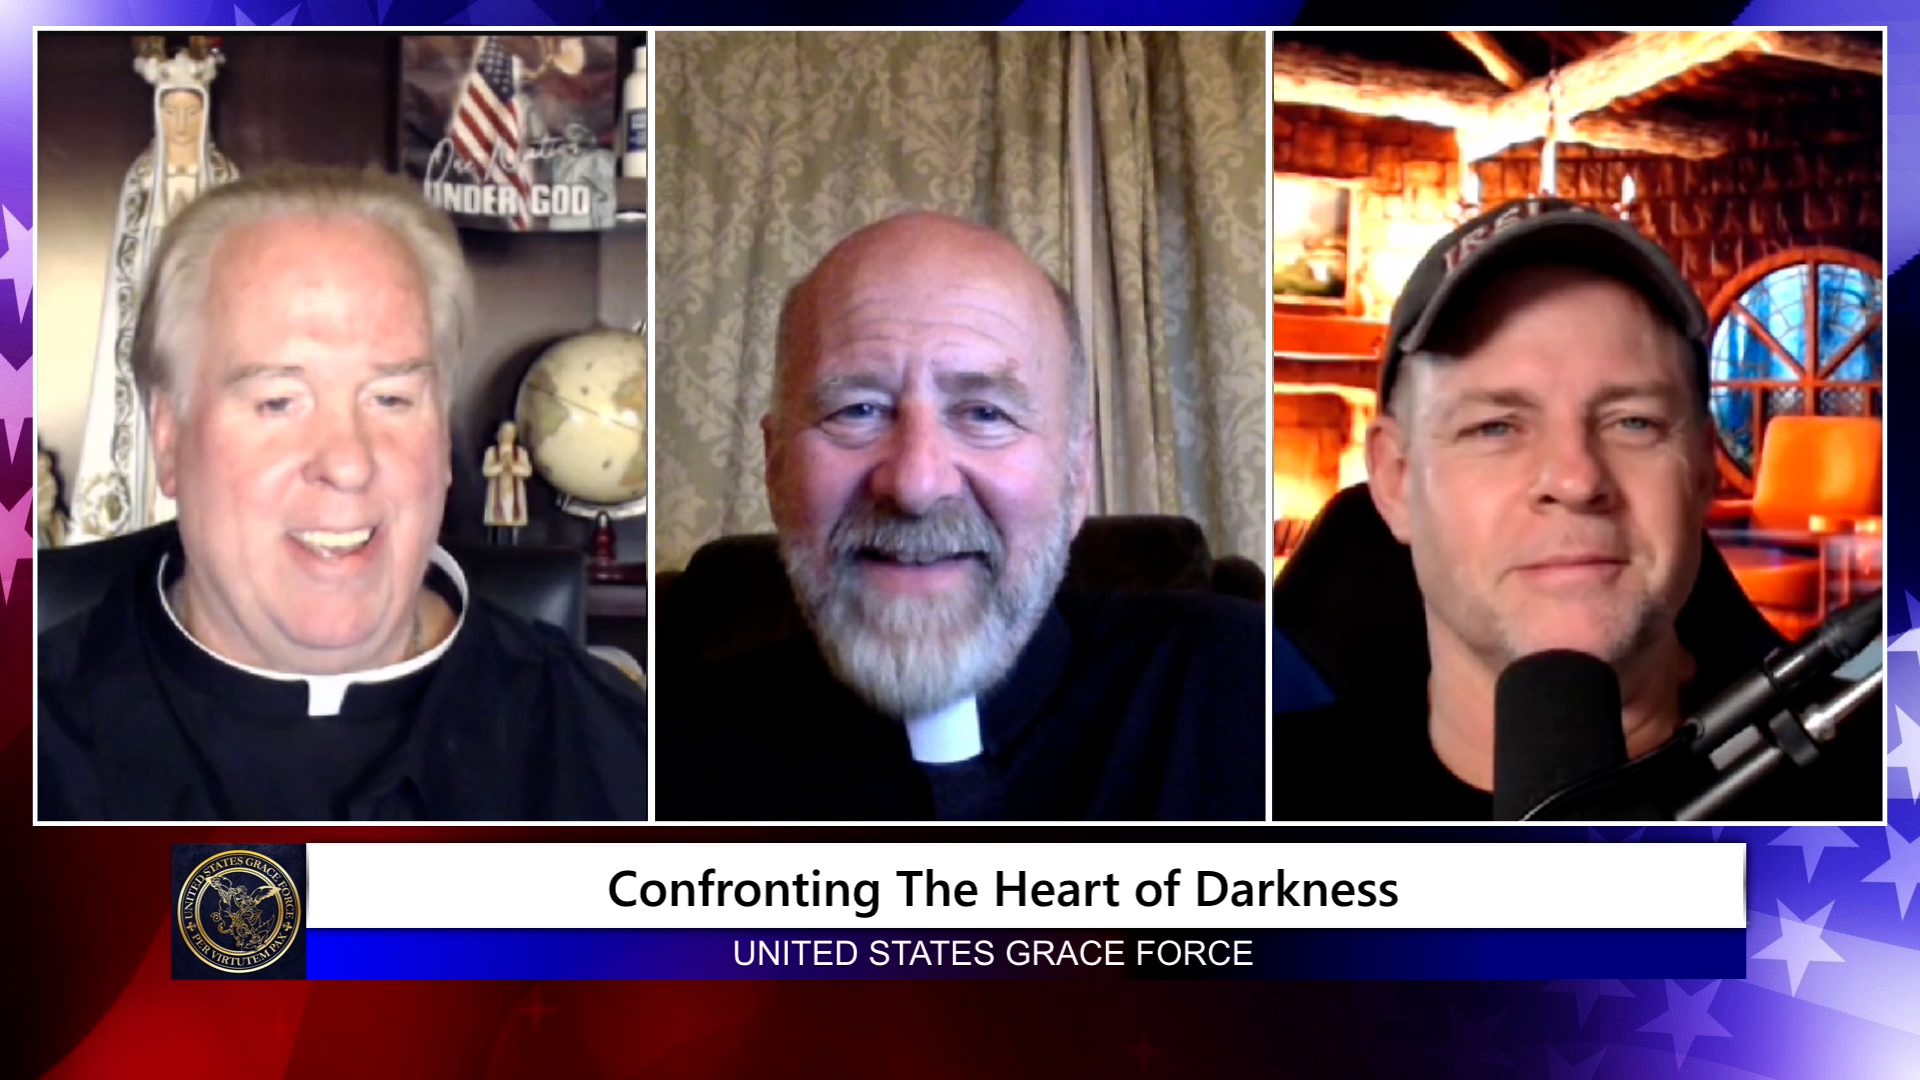 Confronting The Heart of Darkness